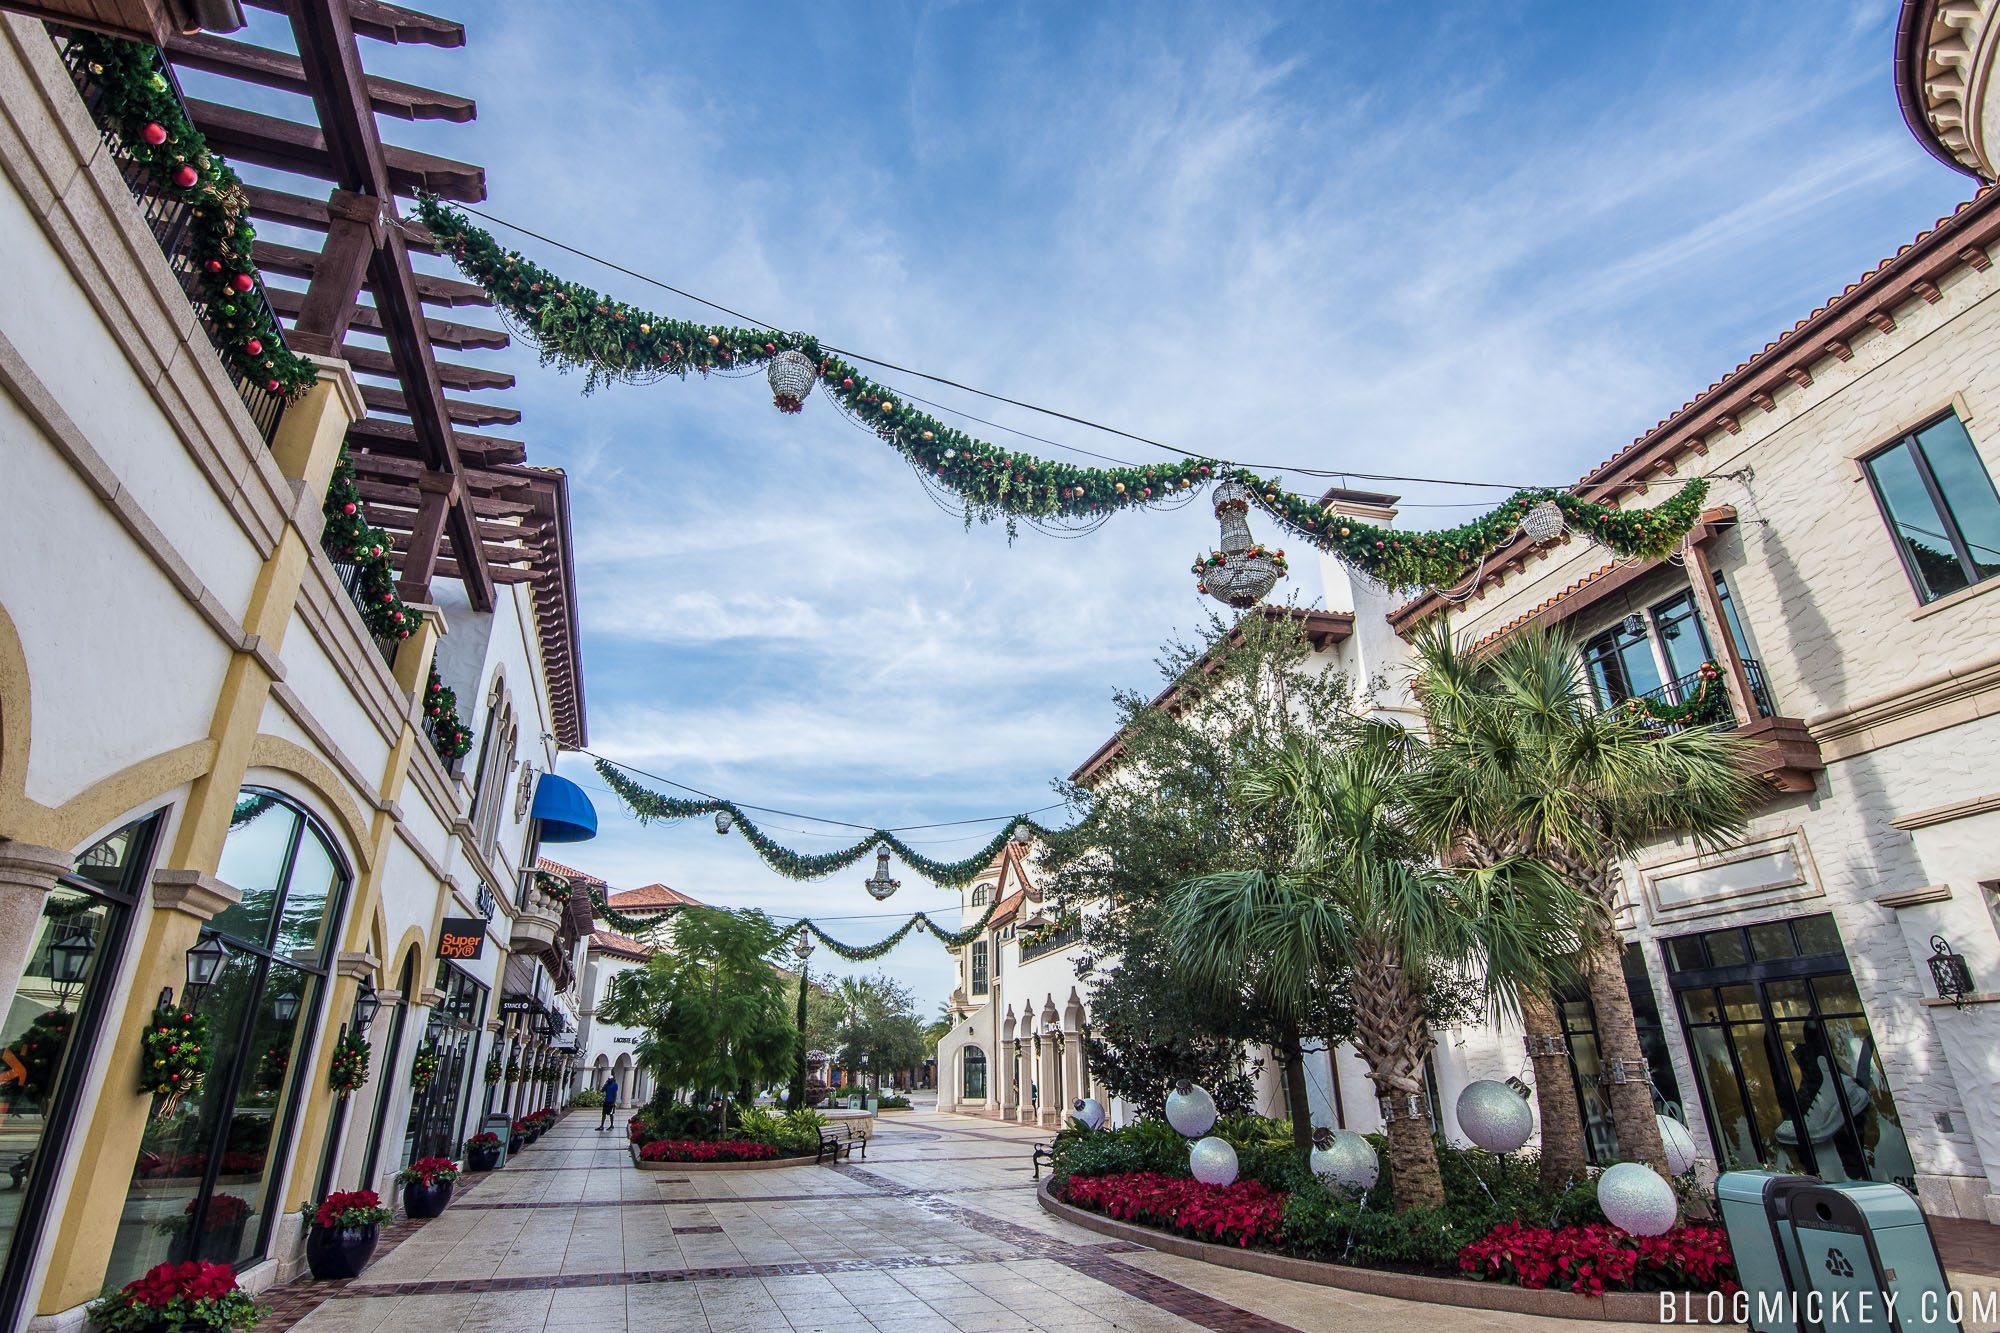 today marked the first day of holiday activities at disney springs in order to get into the holiday spirit town center has been decorated with garland - When Is Disney Decorated For Christmas